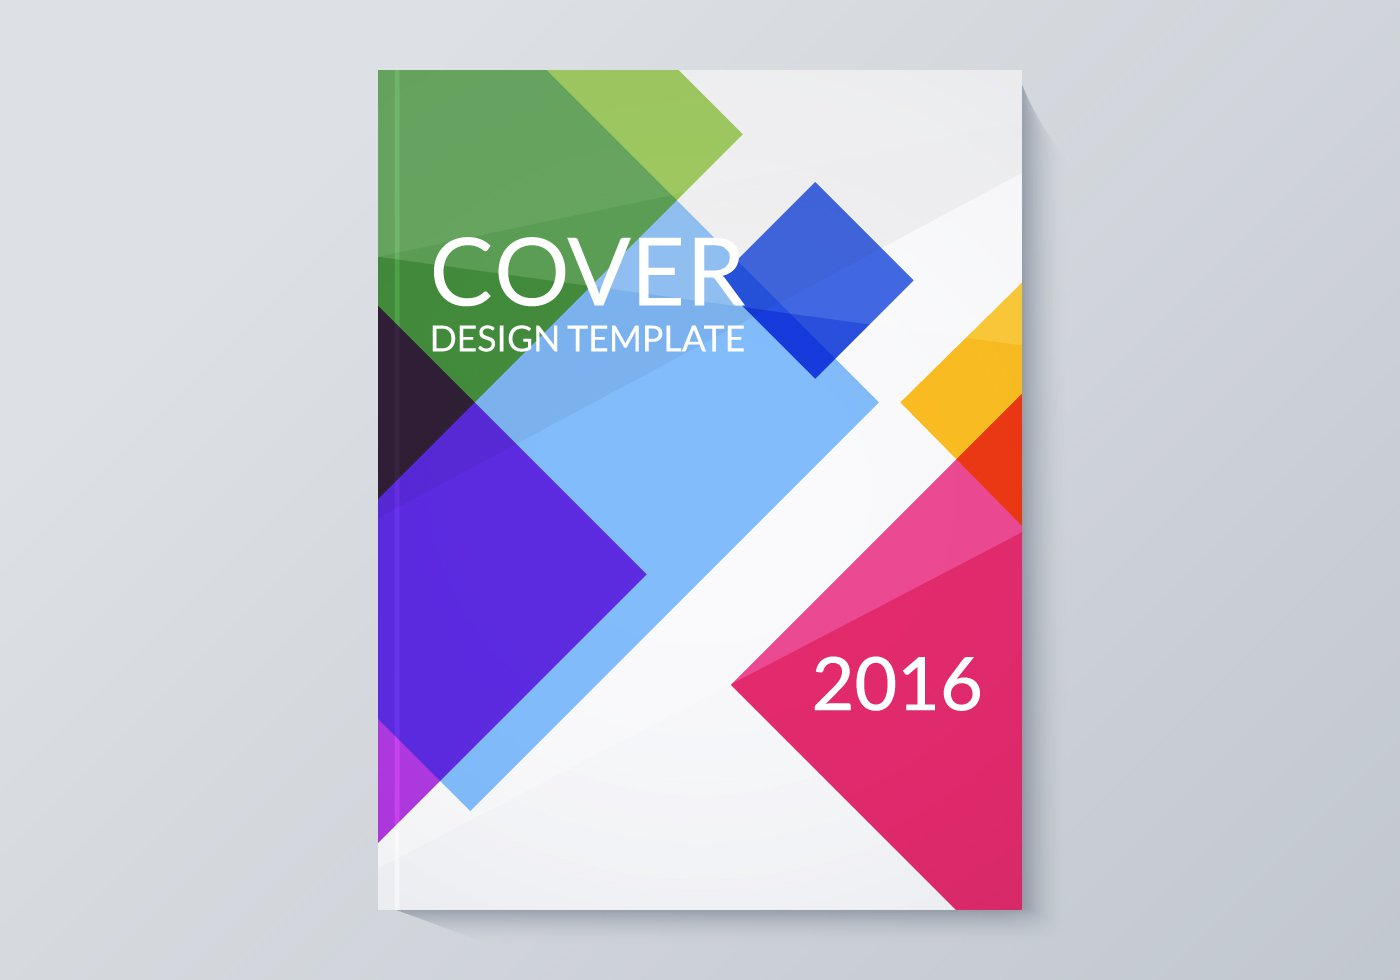 15 graphic design cover templates images graphic design for Cover pages designs templates free